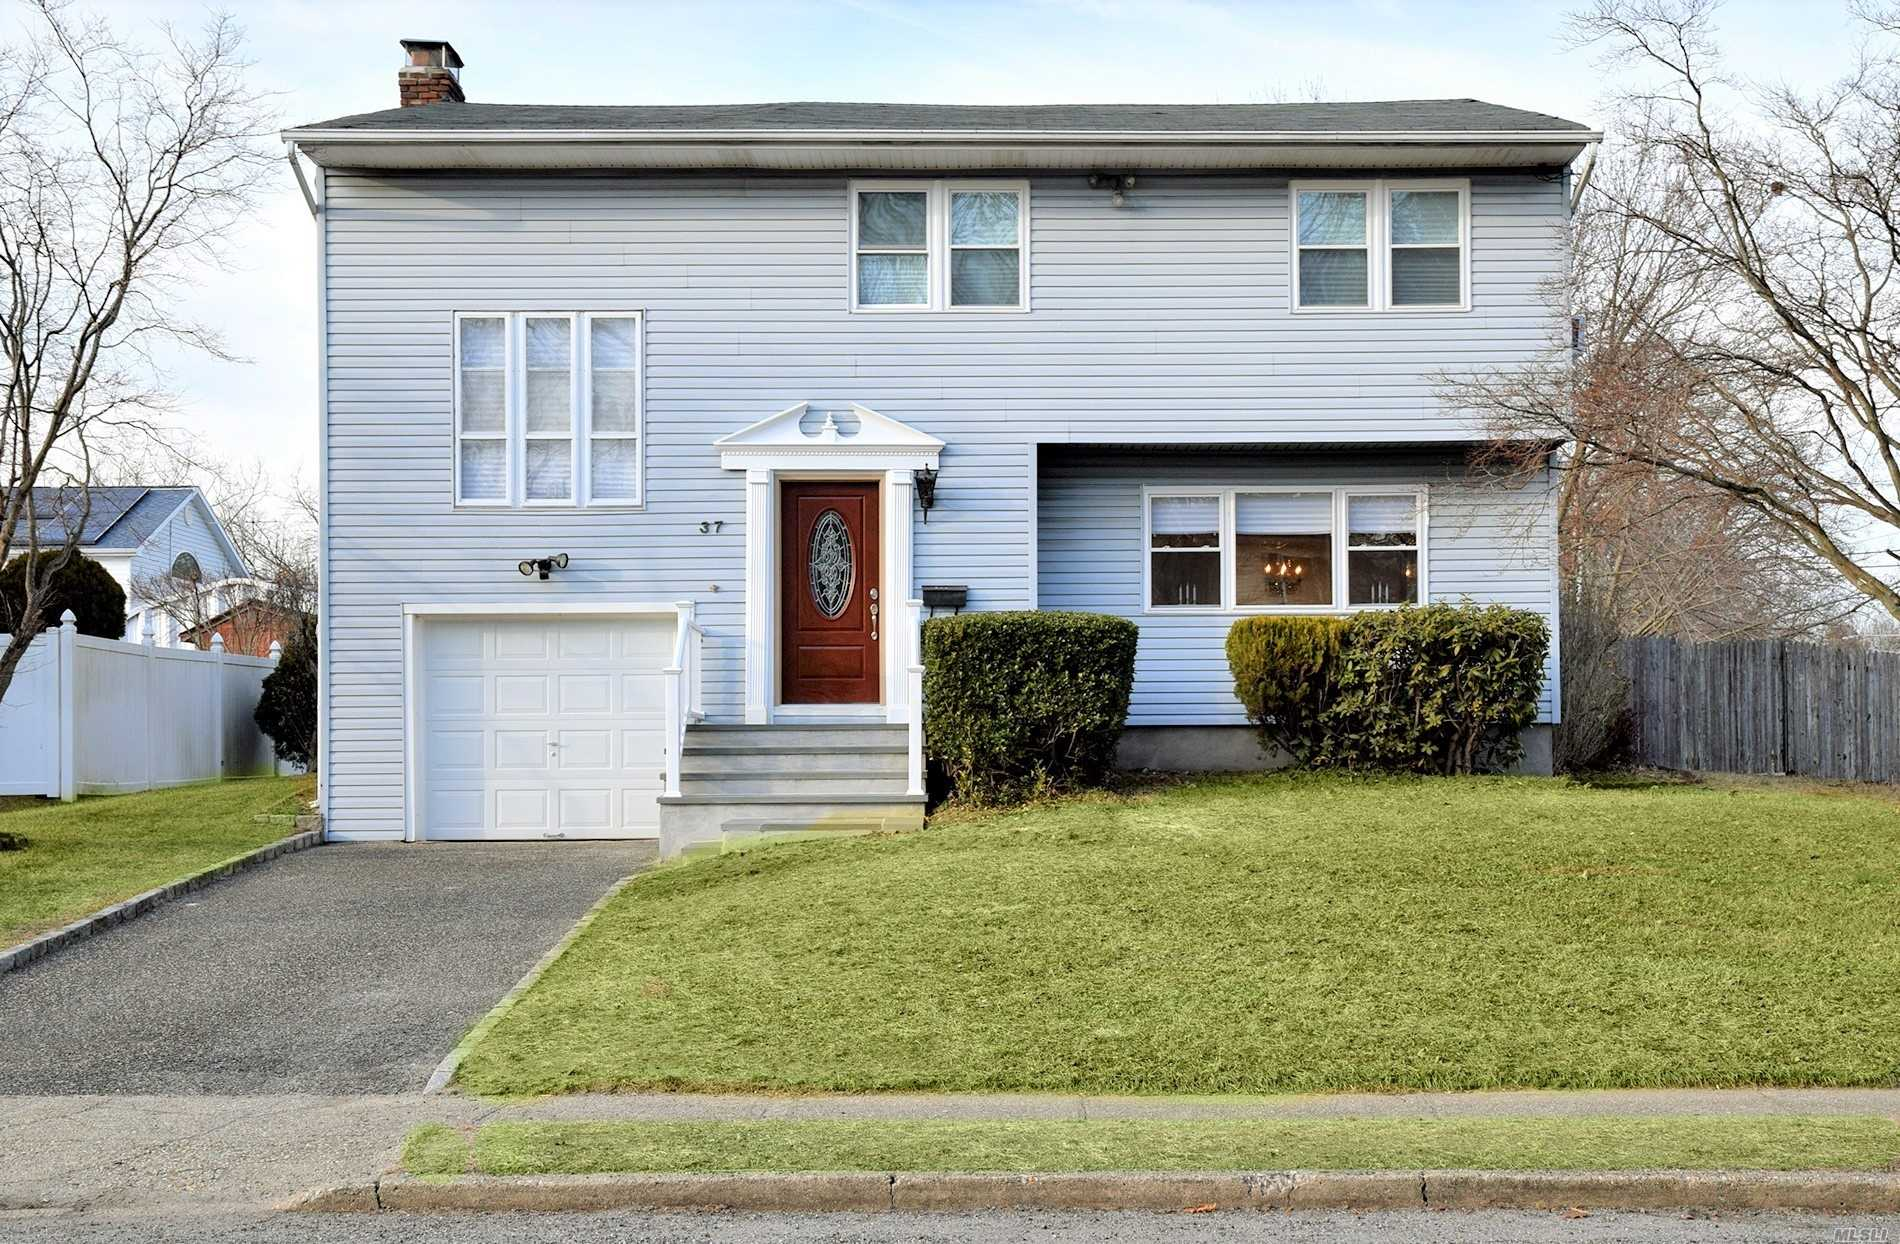 Renovated 1800 Sf Colonial w Open Floor Plan. Beau EIK w New Granite-Backsplash-Cabinets-Wood Floors w Stainless Apls. 9 Spacious Sunlit Rms inc 4 Bedrooms & 2.5 Gorg Baths w Custom Ceramic Tile & New Fixtures. 16' x 13' Mstr BR w Full Bth. New Windows-Doors-Wood Floors-Hi Hats & Freshly Painted. Den w Cathedral Ceiling & Fireplace. Alarm Sys. Bluestone Porch. Large Backyard. Gas Heat Avail on Block. Min to LIRR, LIE & Shopping. Desirable Sachem Schools. Low Taxes, only $7, 836 w Basic Star!